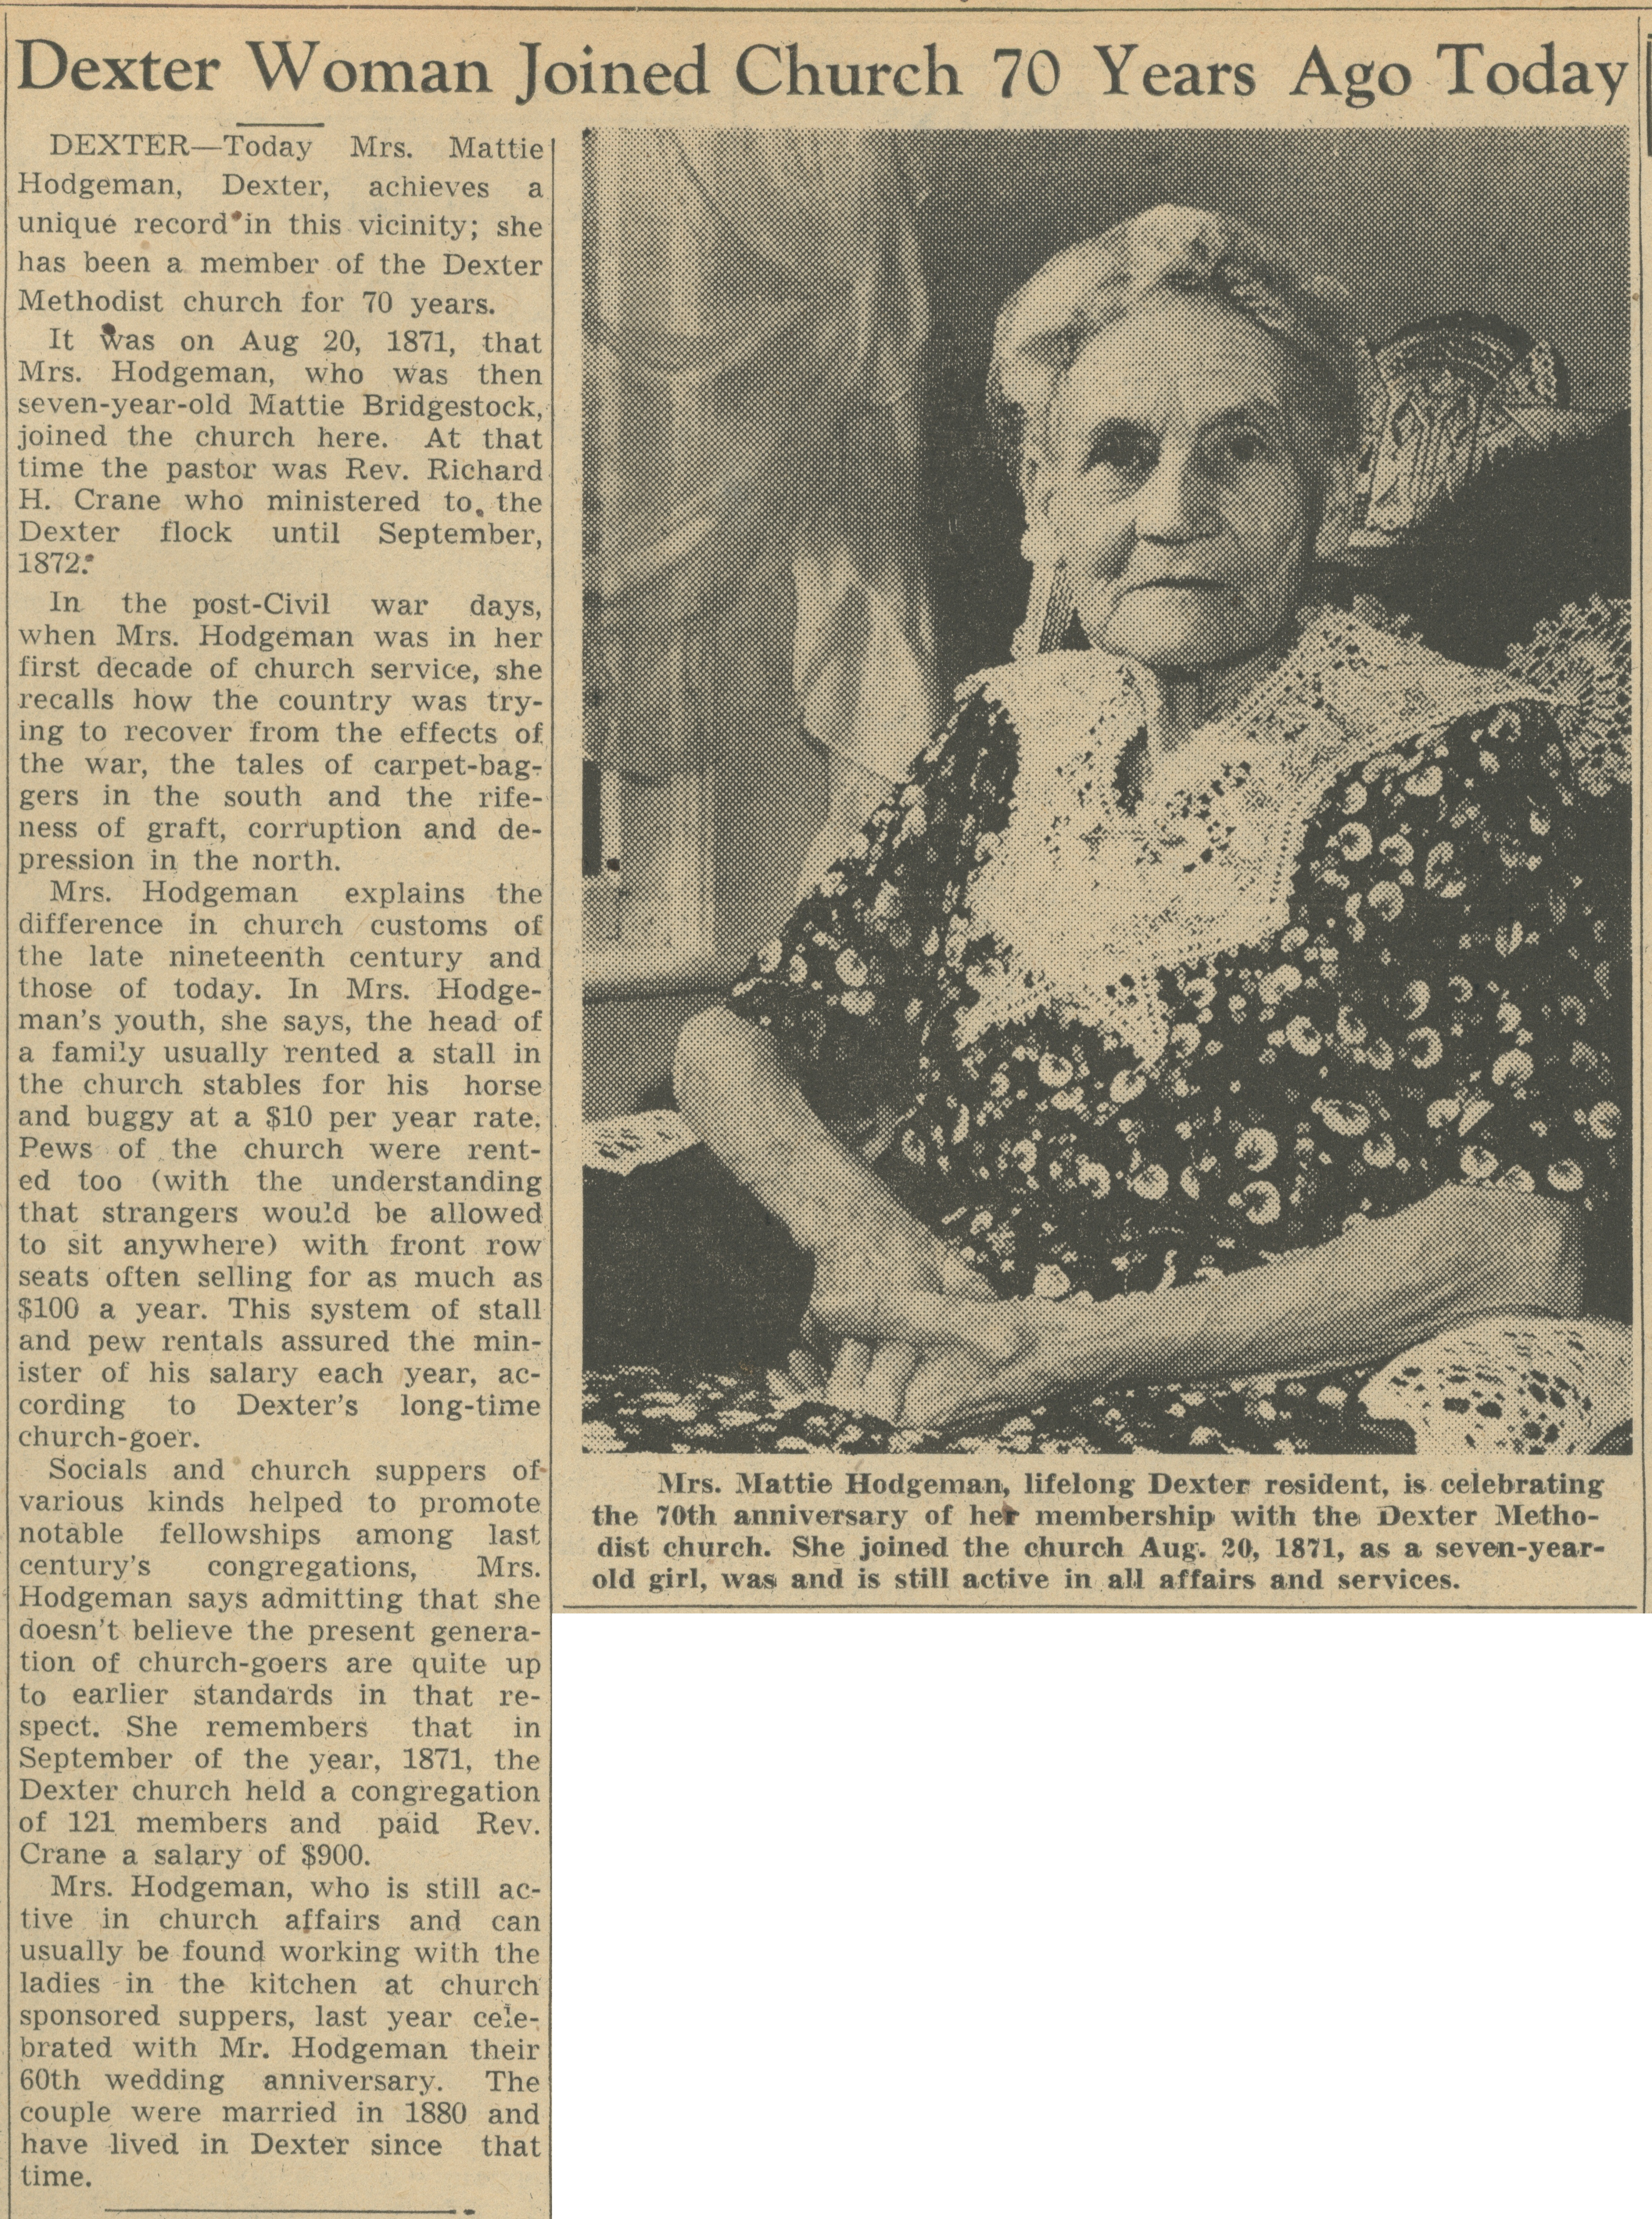 Dexter Woman Joined Church 70 Years Ago Today image